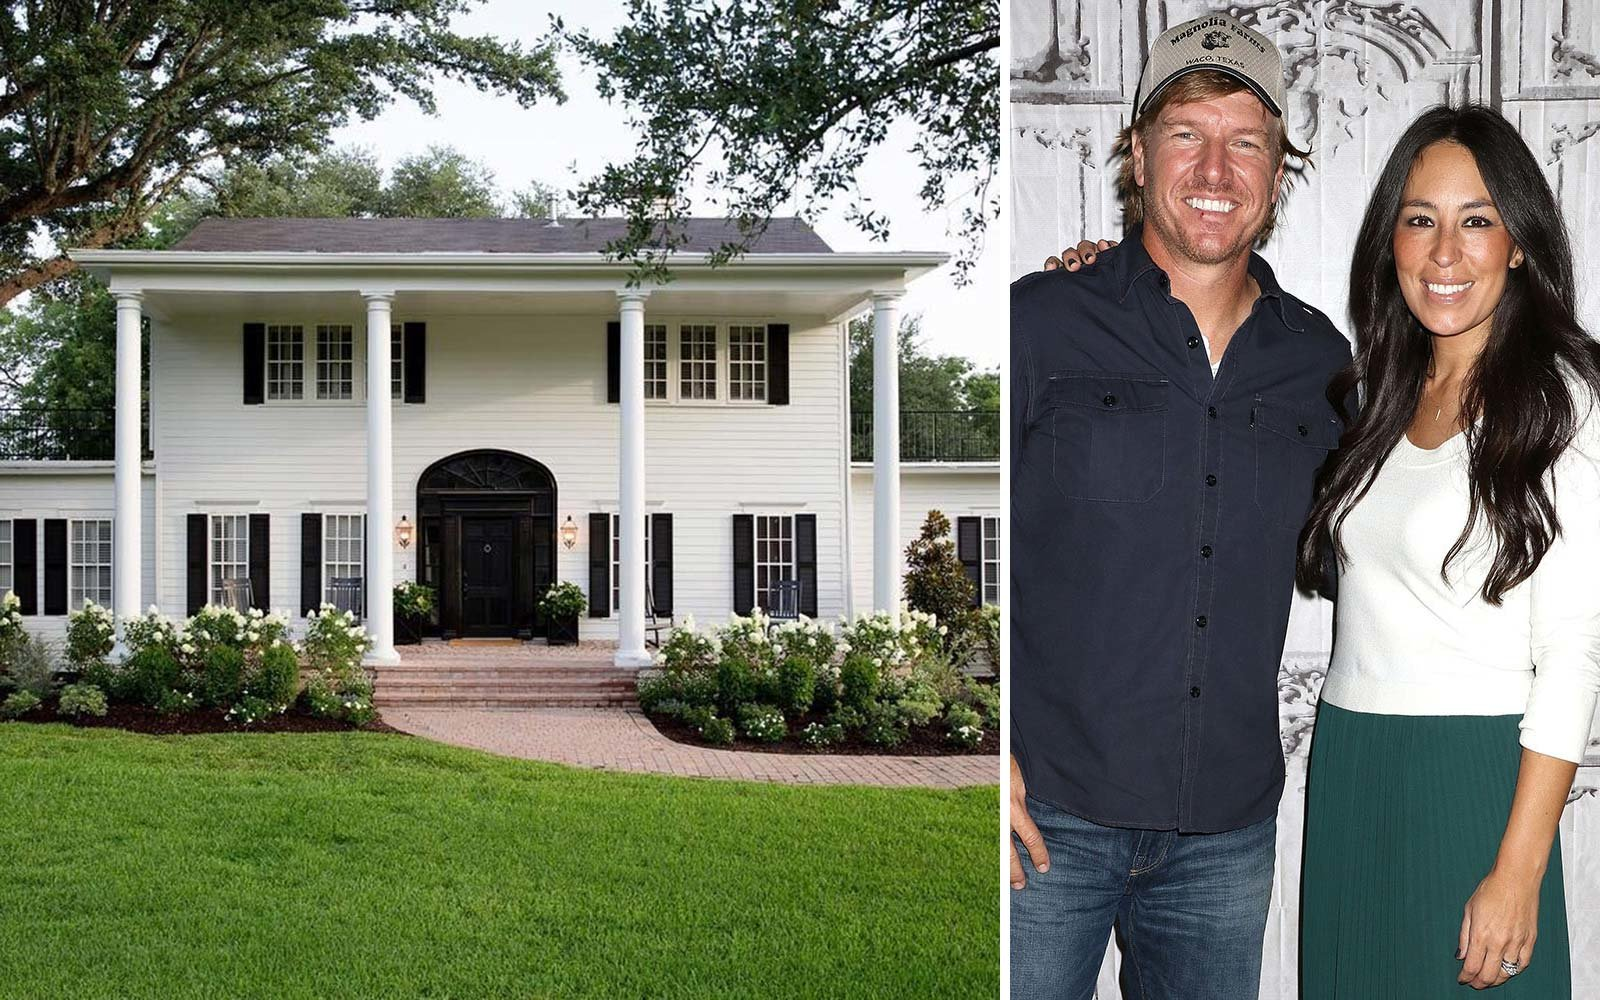 Joanna and Chip Gaines Fixer Upper Vacation House Rental Waco Texas